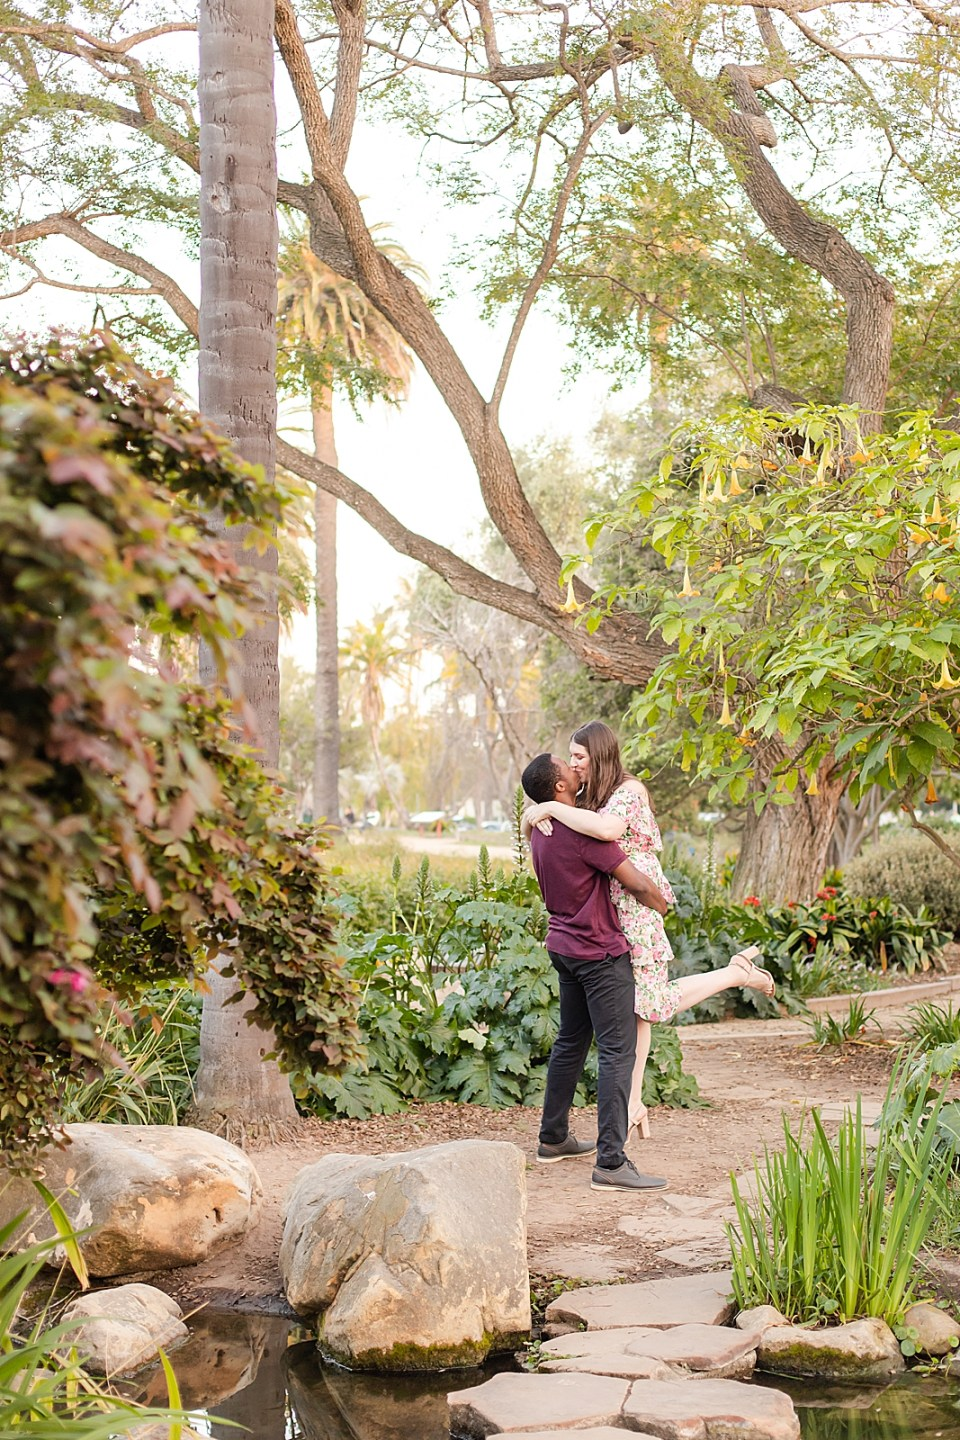 Myles lifting Sarah up and giving her a kiss with trees in the foreground and background during their Alice Keck Garden Engagement session.